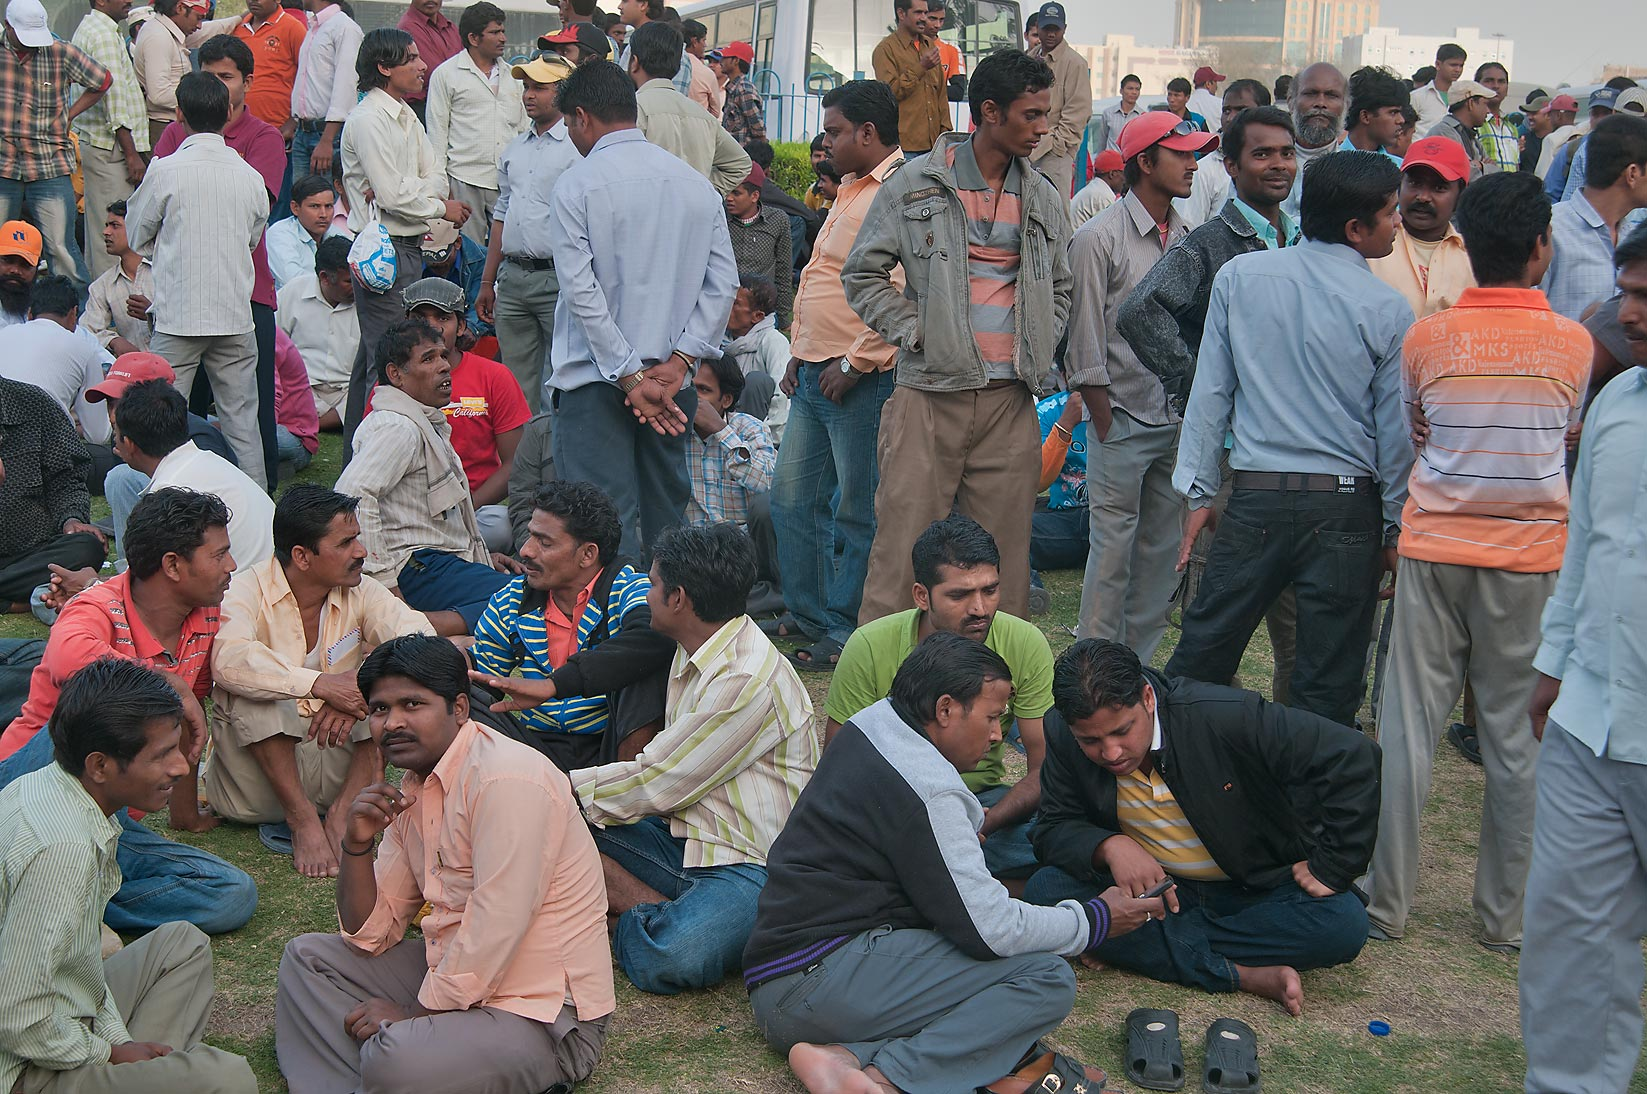 Migrant workers gathering on Friday evening on a...Al Ghanim) Bus Station. Doha, Qatar